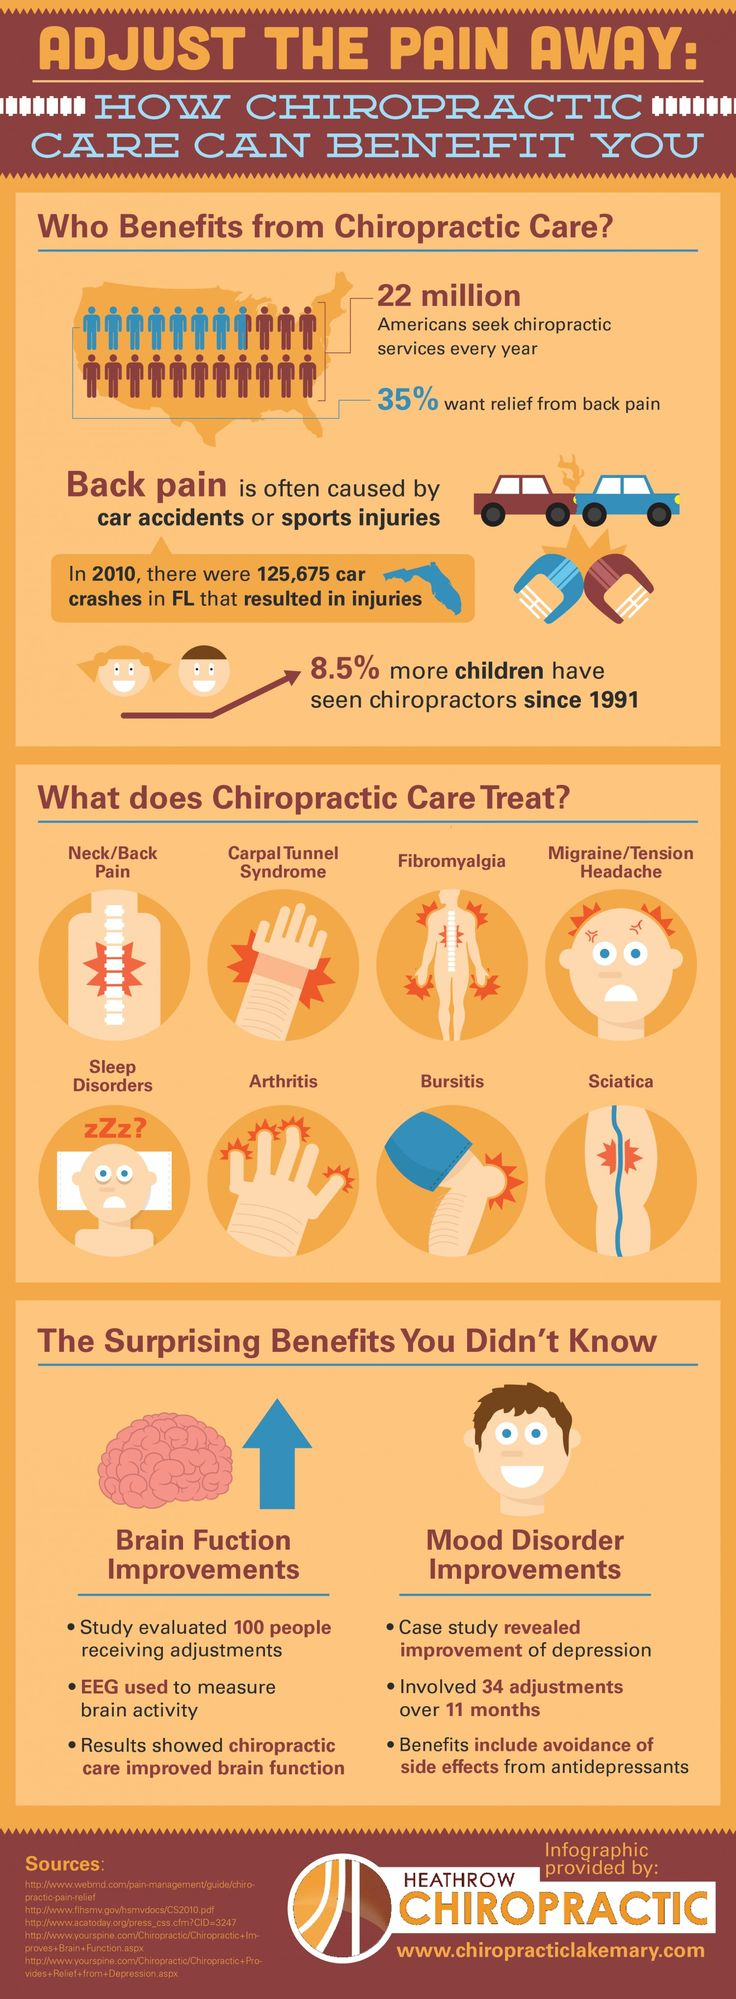 Traditional medical or chiropractic treatment for